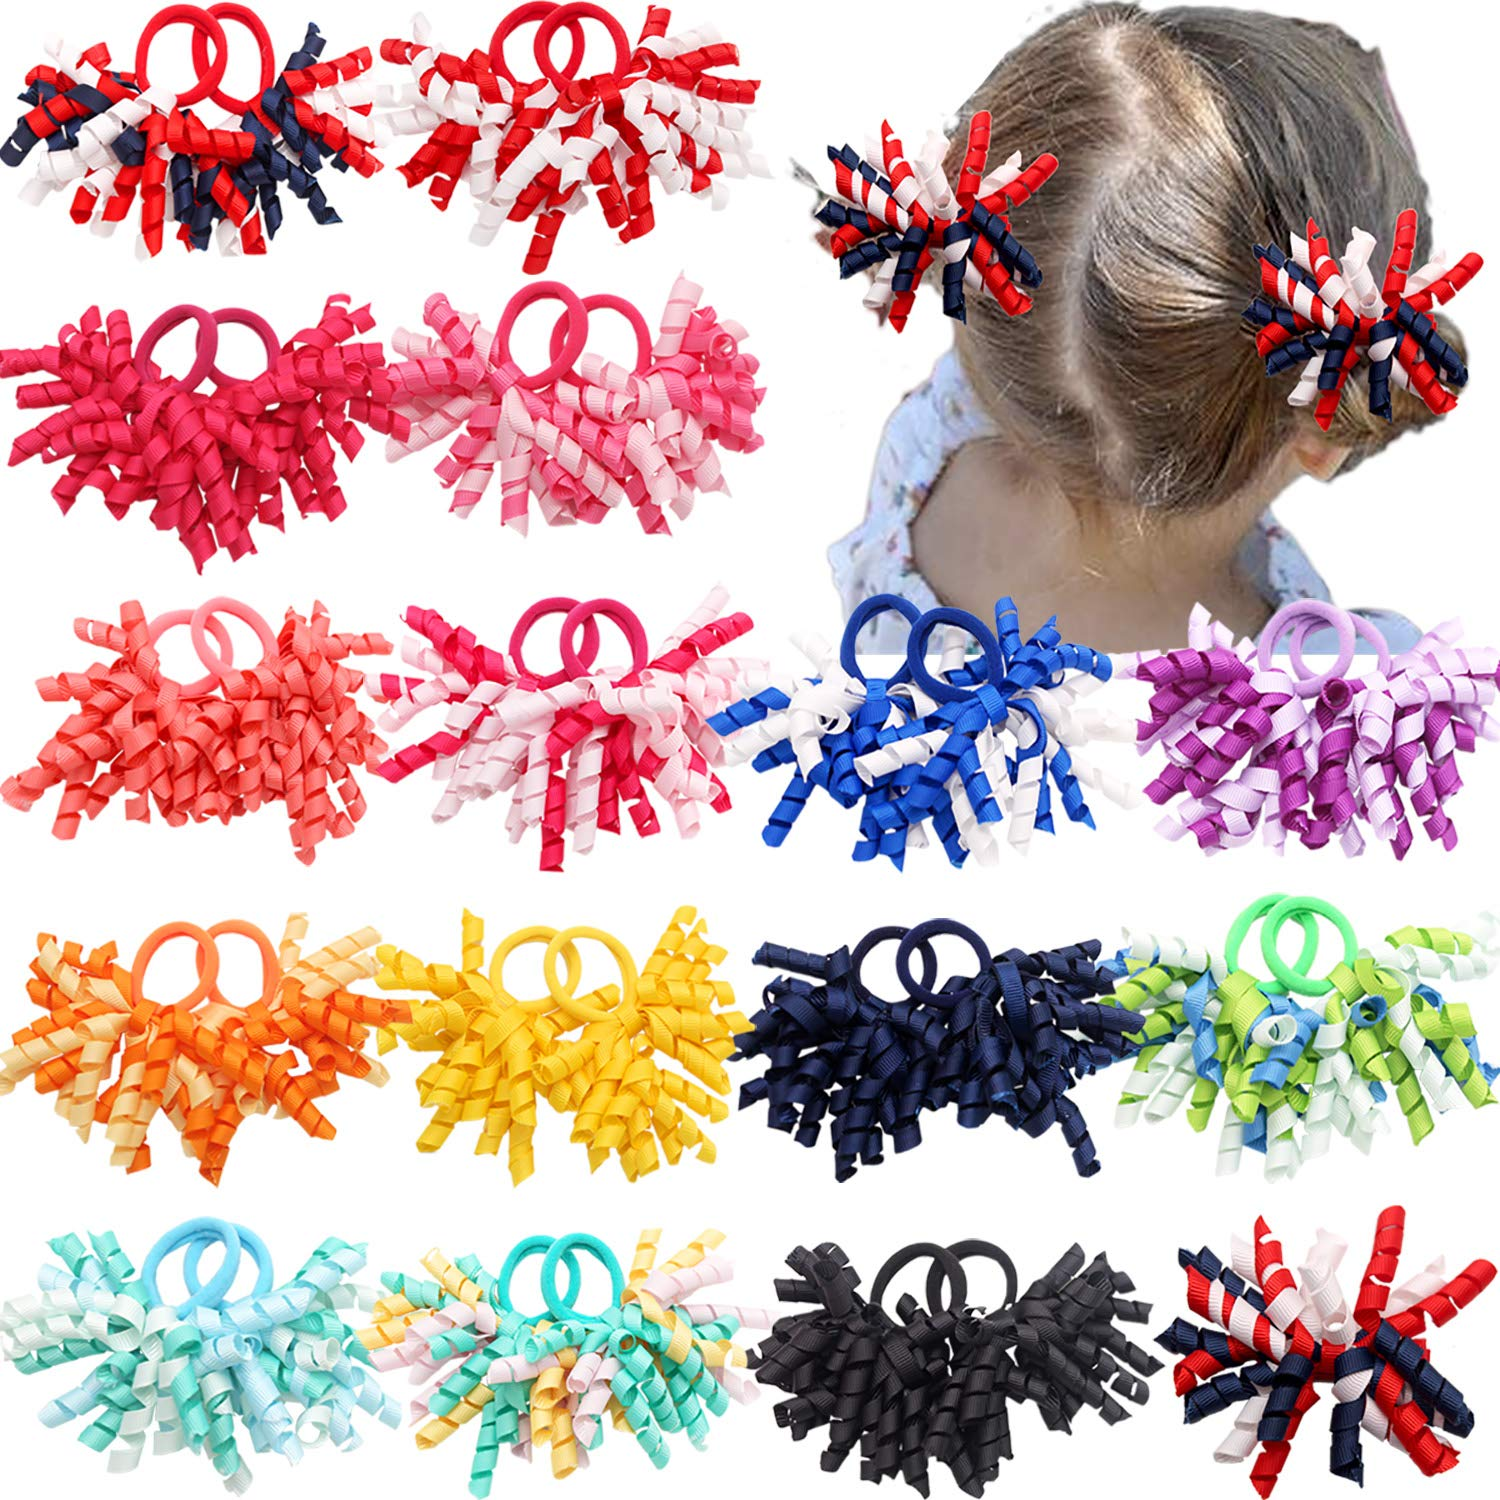 30 PCS 15 Pairs Boutique Solid Color Curly Korker Hair Bows Seamless pigtails Holders Elastic Hair Ties for Baby Girls Toddlers Kids